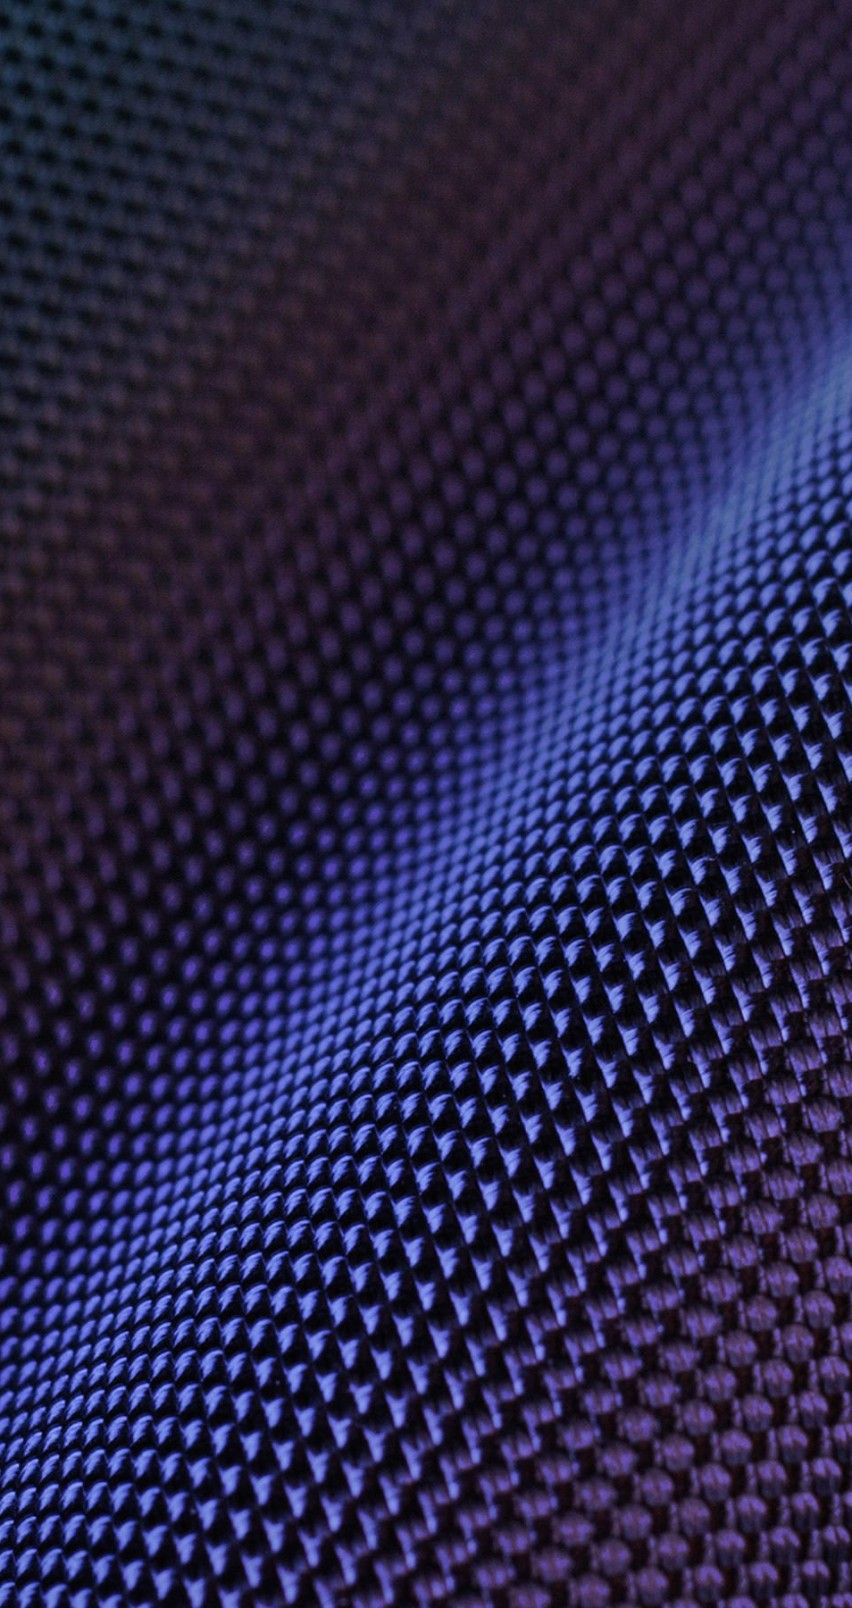 Hd wallpapers for iphone - Download Tri Nylon Texture Hd Wallpaper For Iphone 6 6s